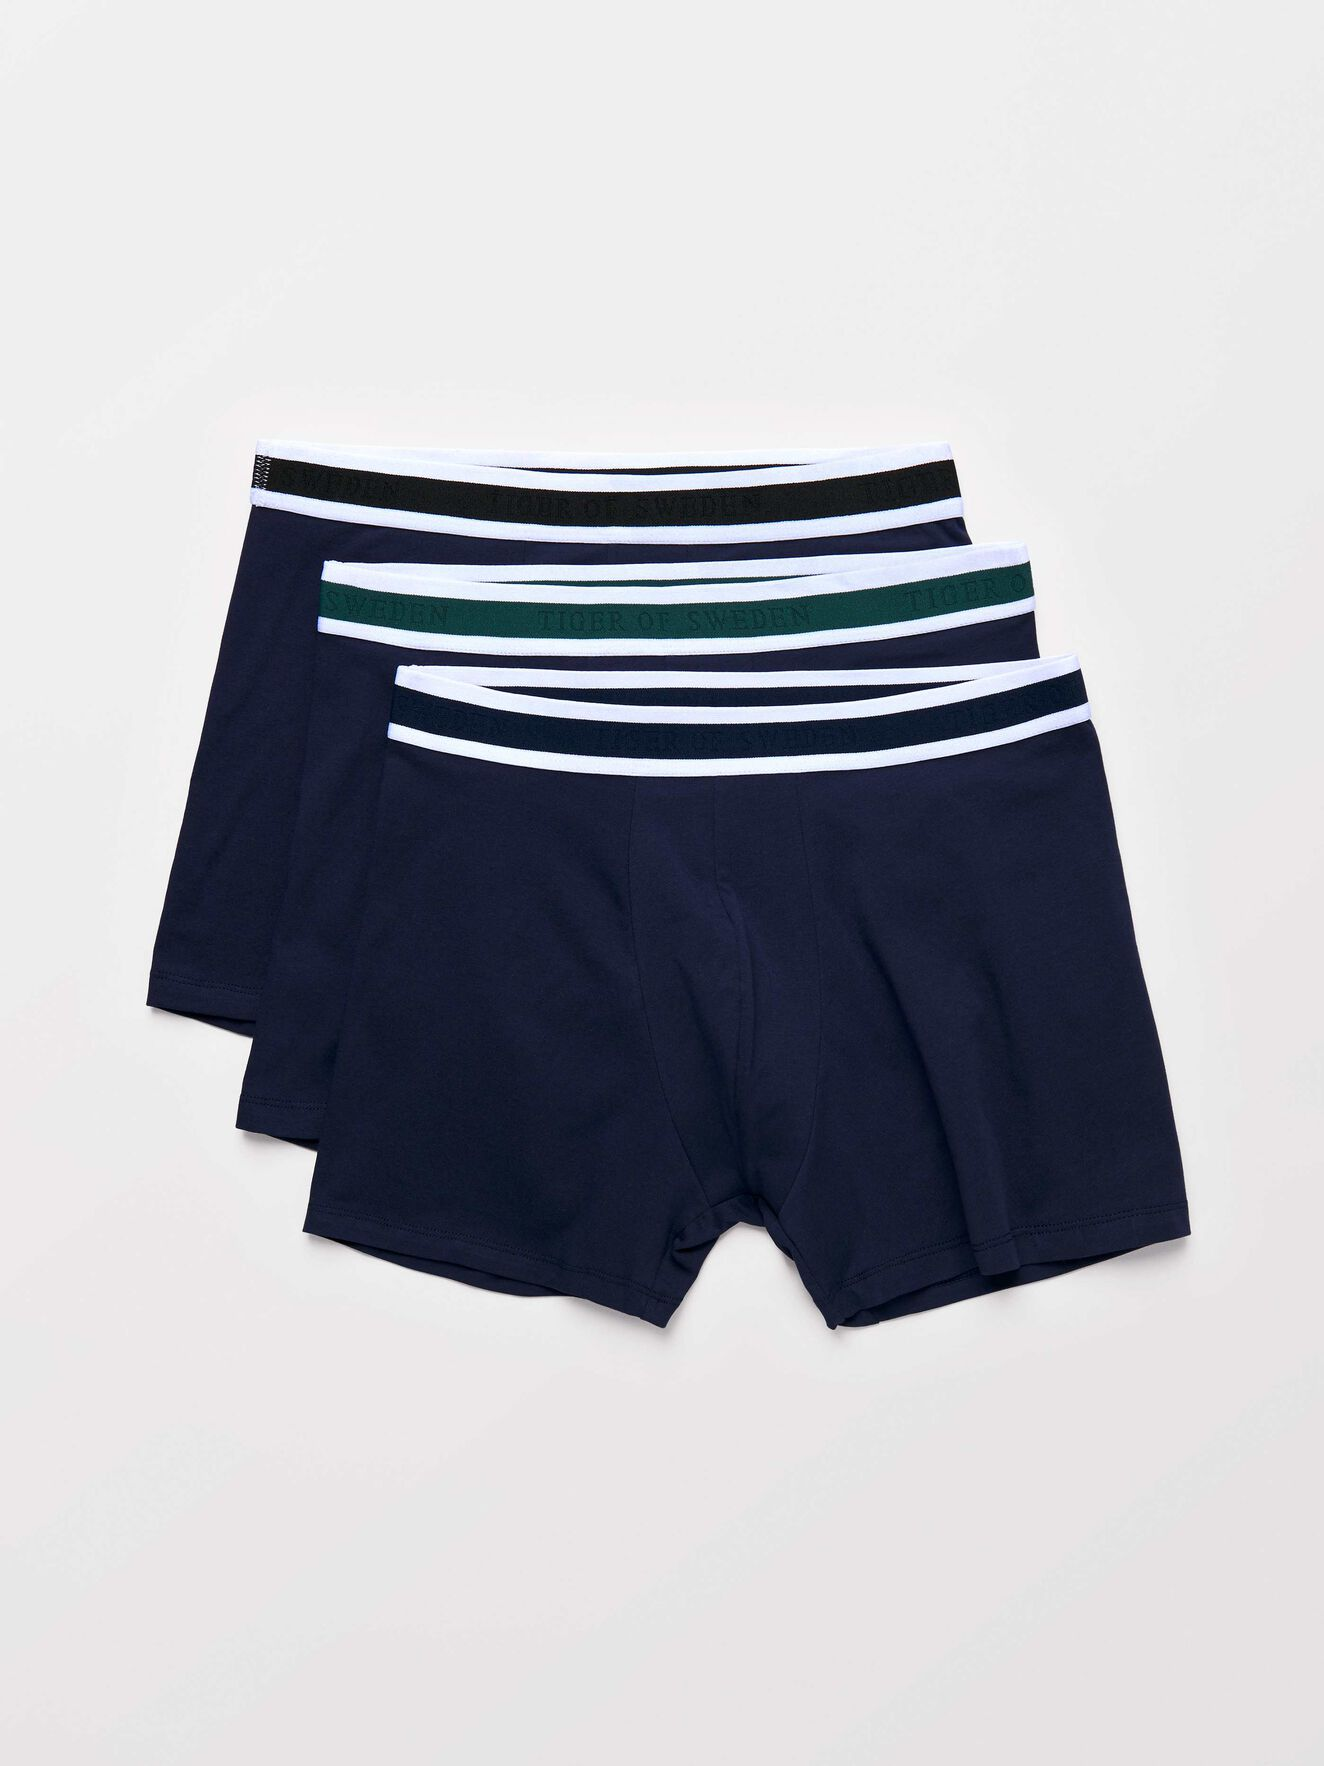 Ohlson Boxershorts in Light Ink from Tiger of Sweden